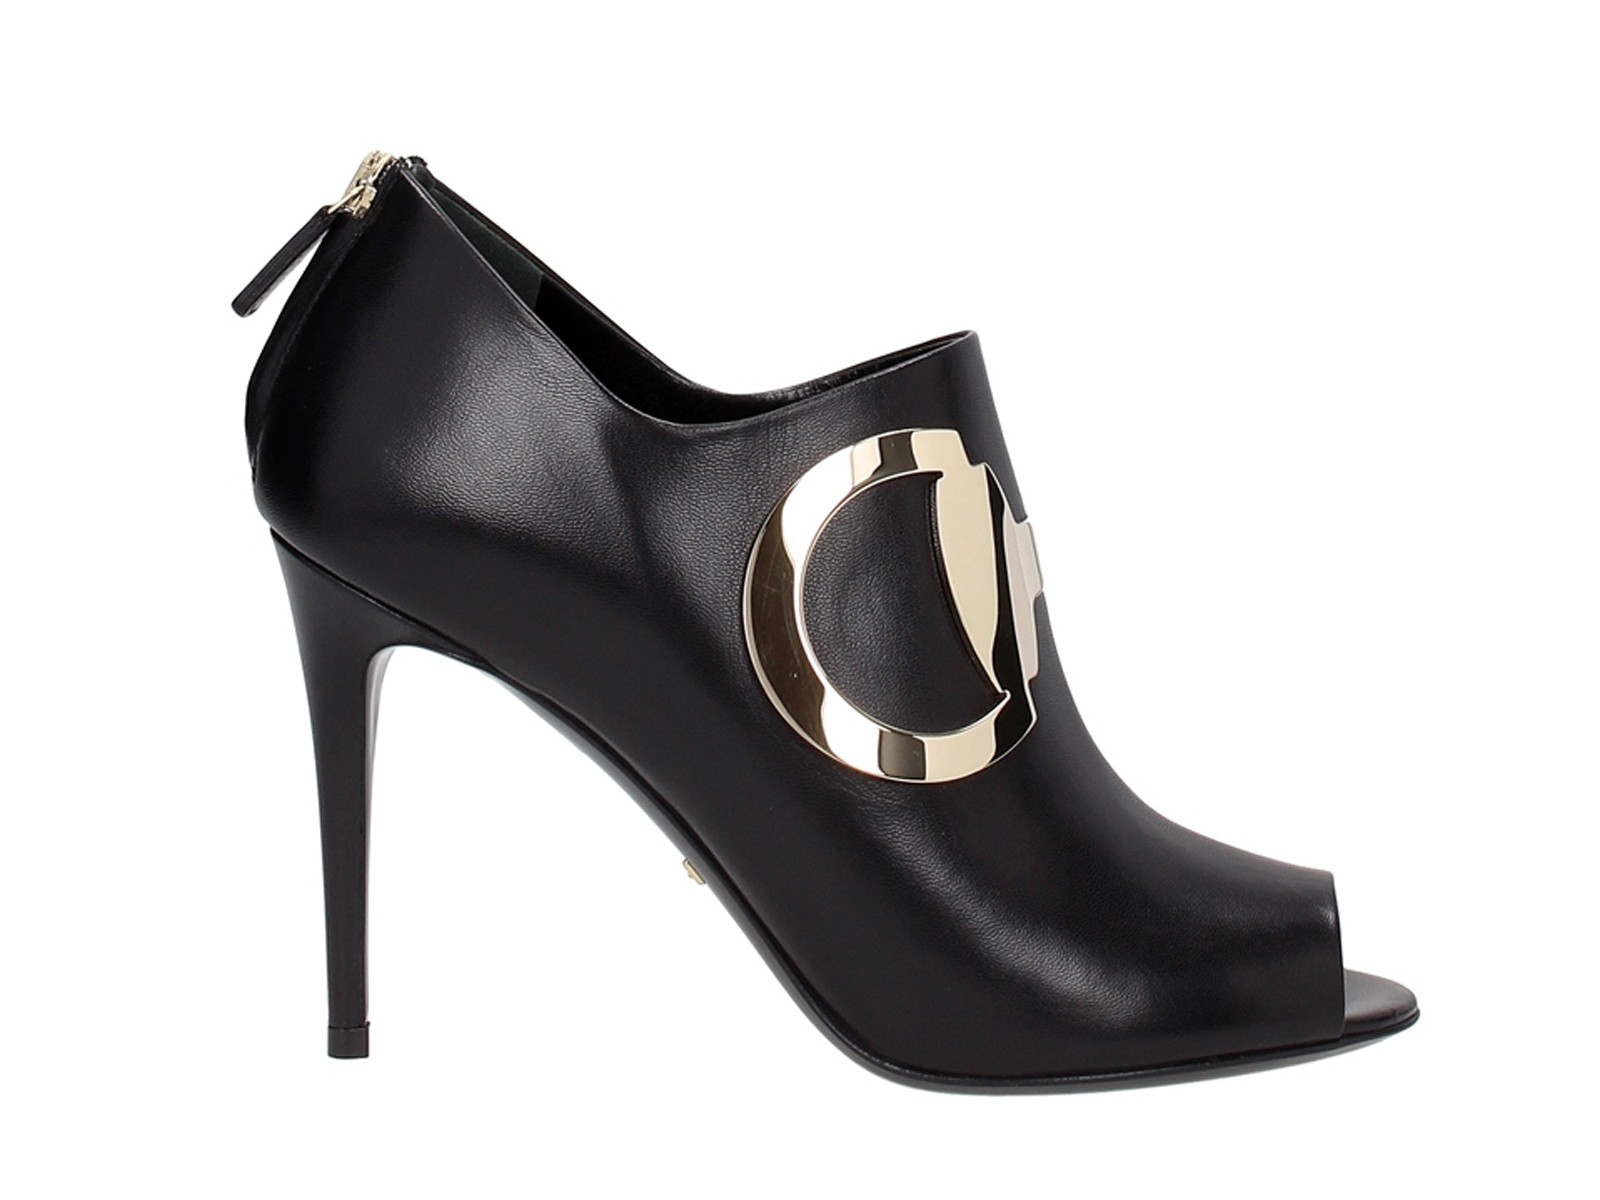 Gucci High Heels Ankle Boots In Black Leather Mod